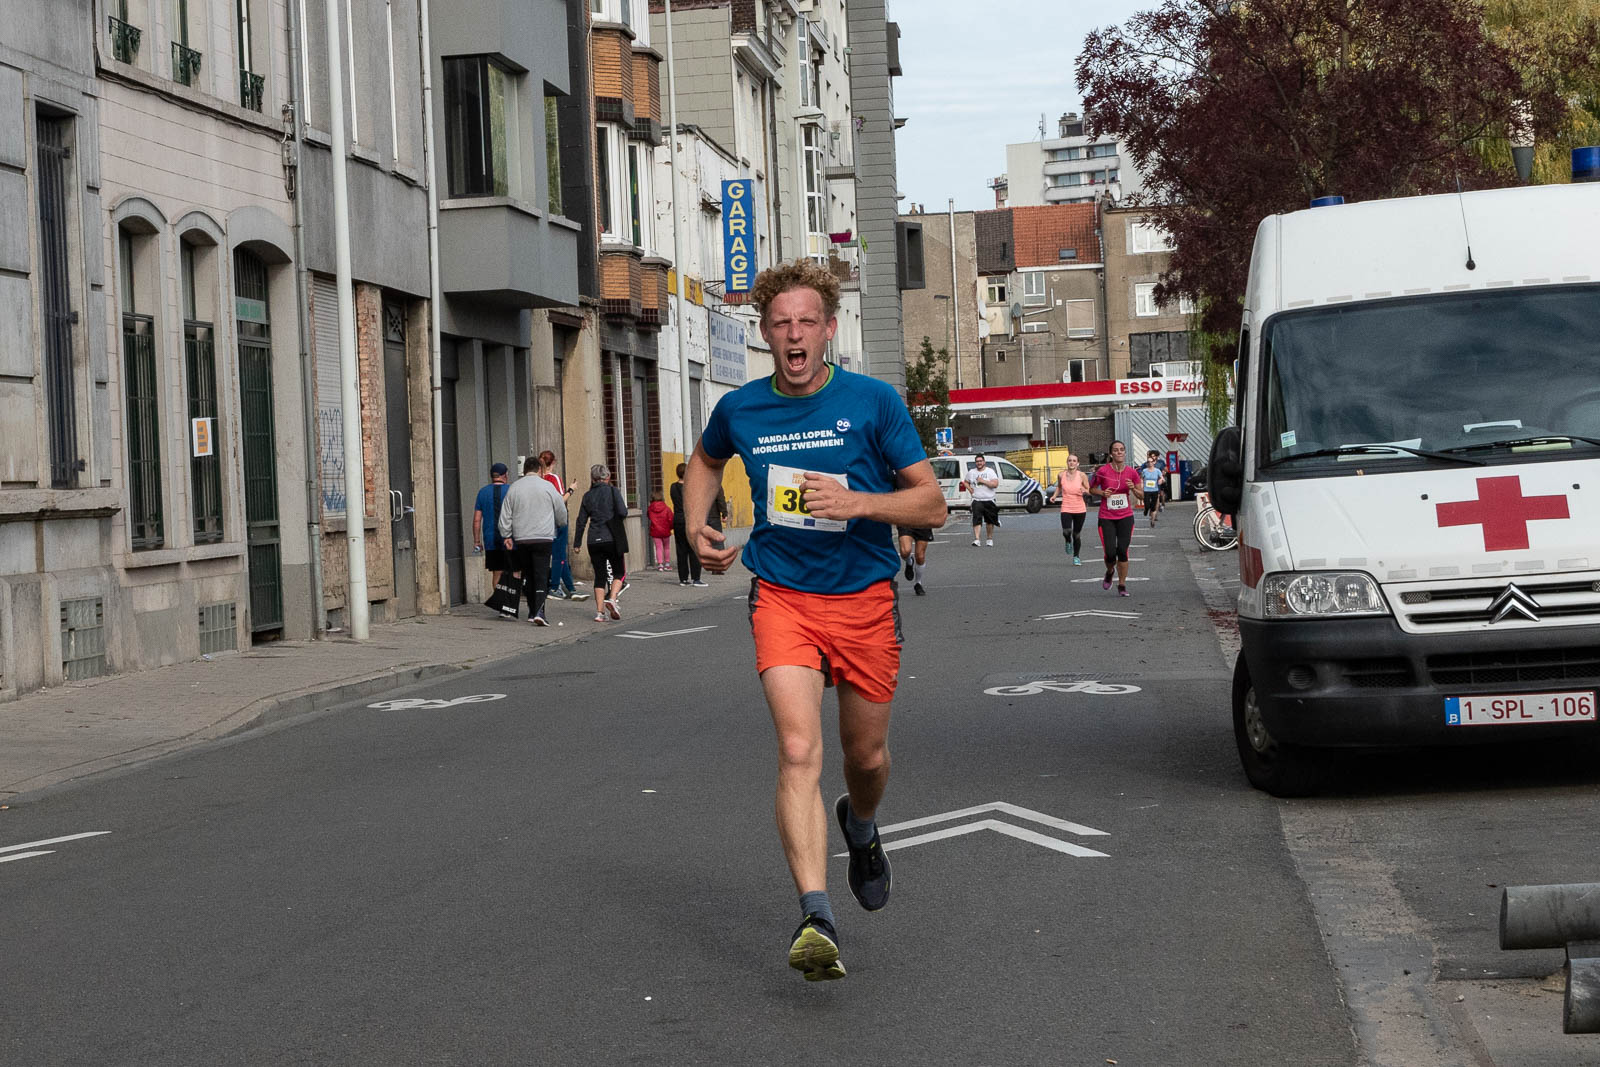 PIC_EVENT_20181020_BRUSSELS-CANAL-RUN_NIKON_013.jpg